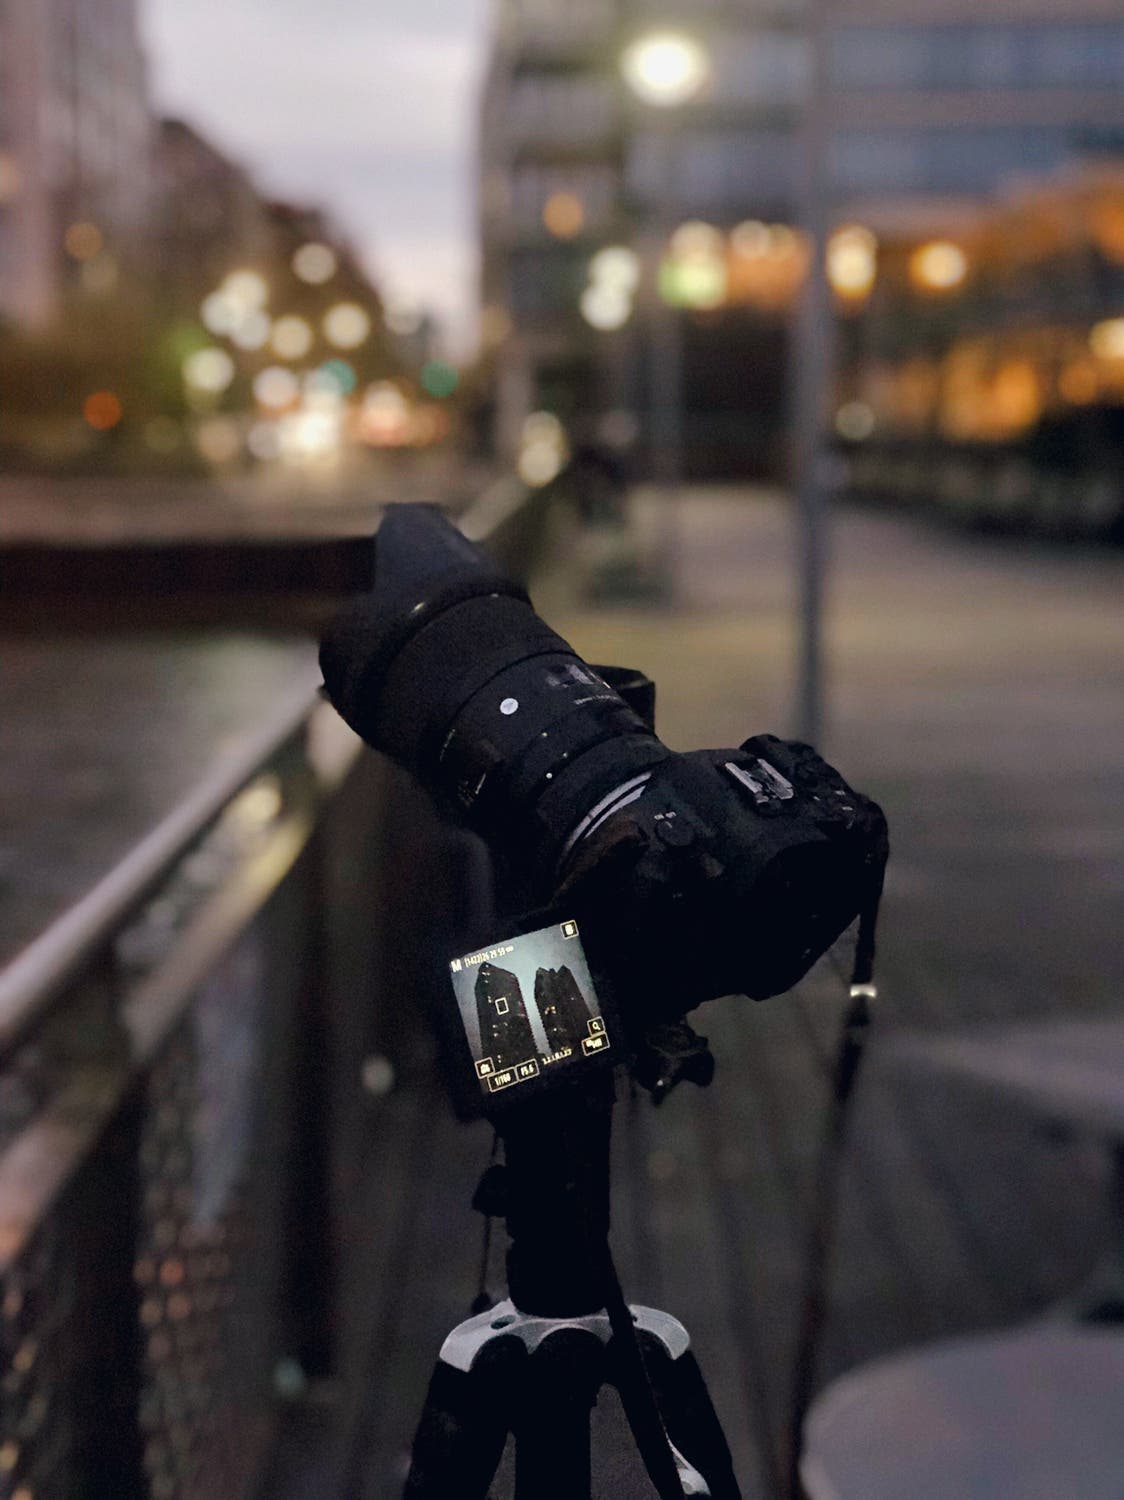 ISO 6400 Comparison: Canon EOS R vs Nikon z7 vs Sony a7r III High ISO Shootout